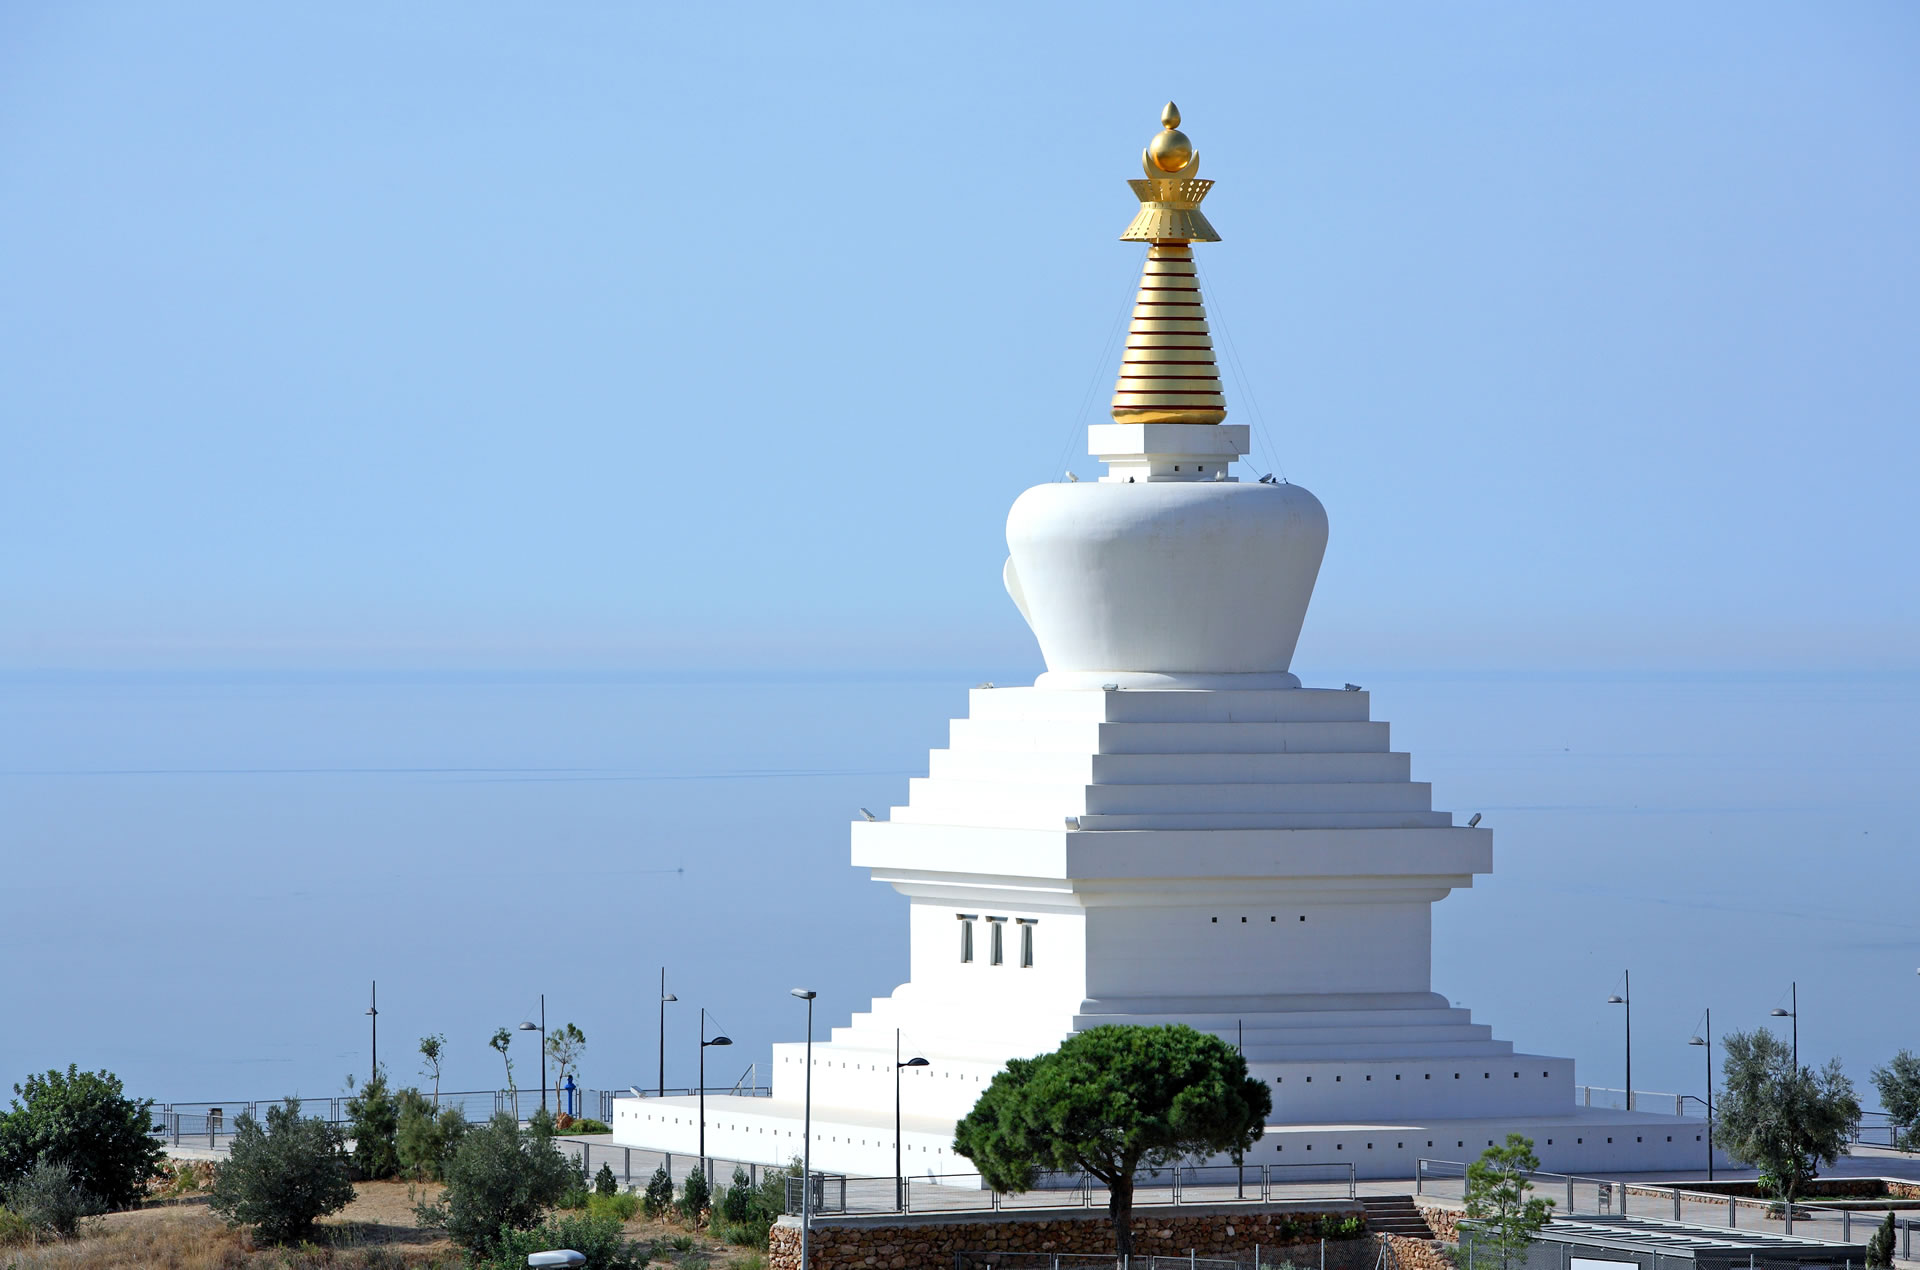 crown city buddhist personals Vandalized buddhist shrine reopens in salt lake city  the vandals also stole a  crown that sat on top of the buddha's head the shrine's.